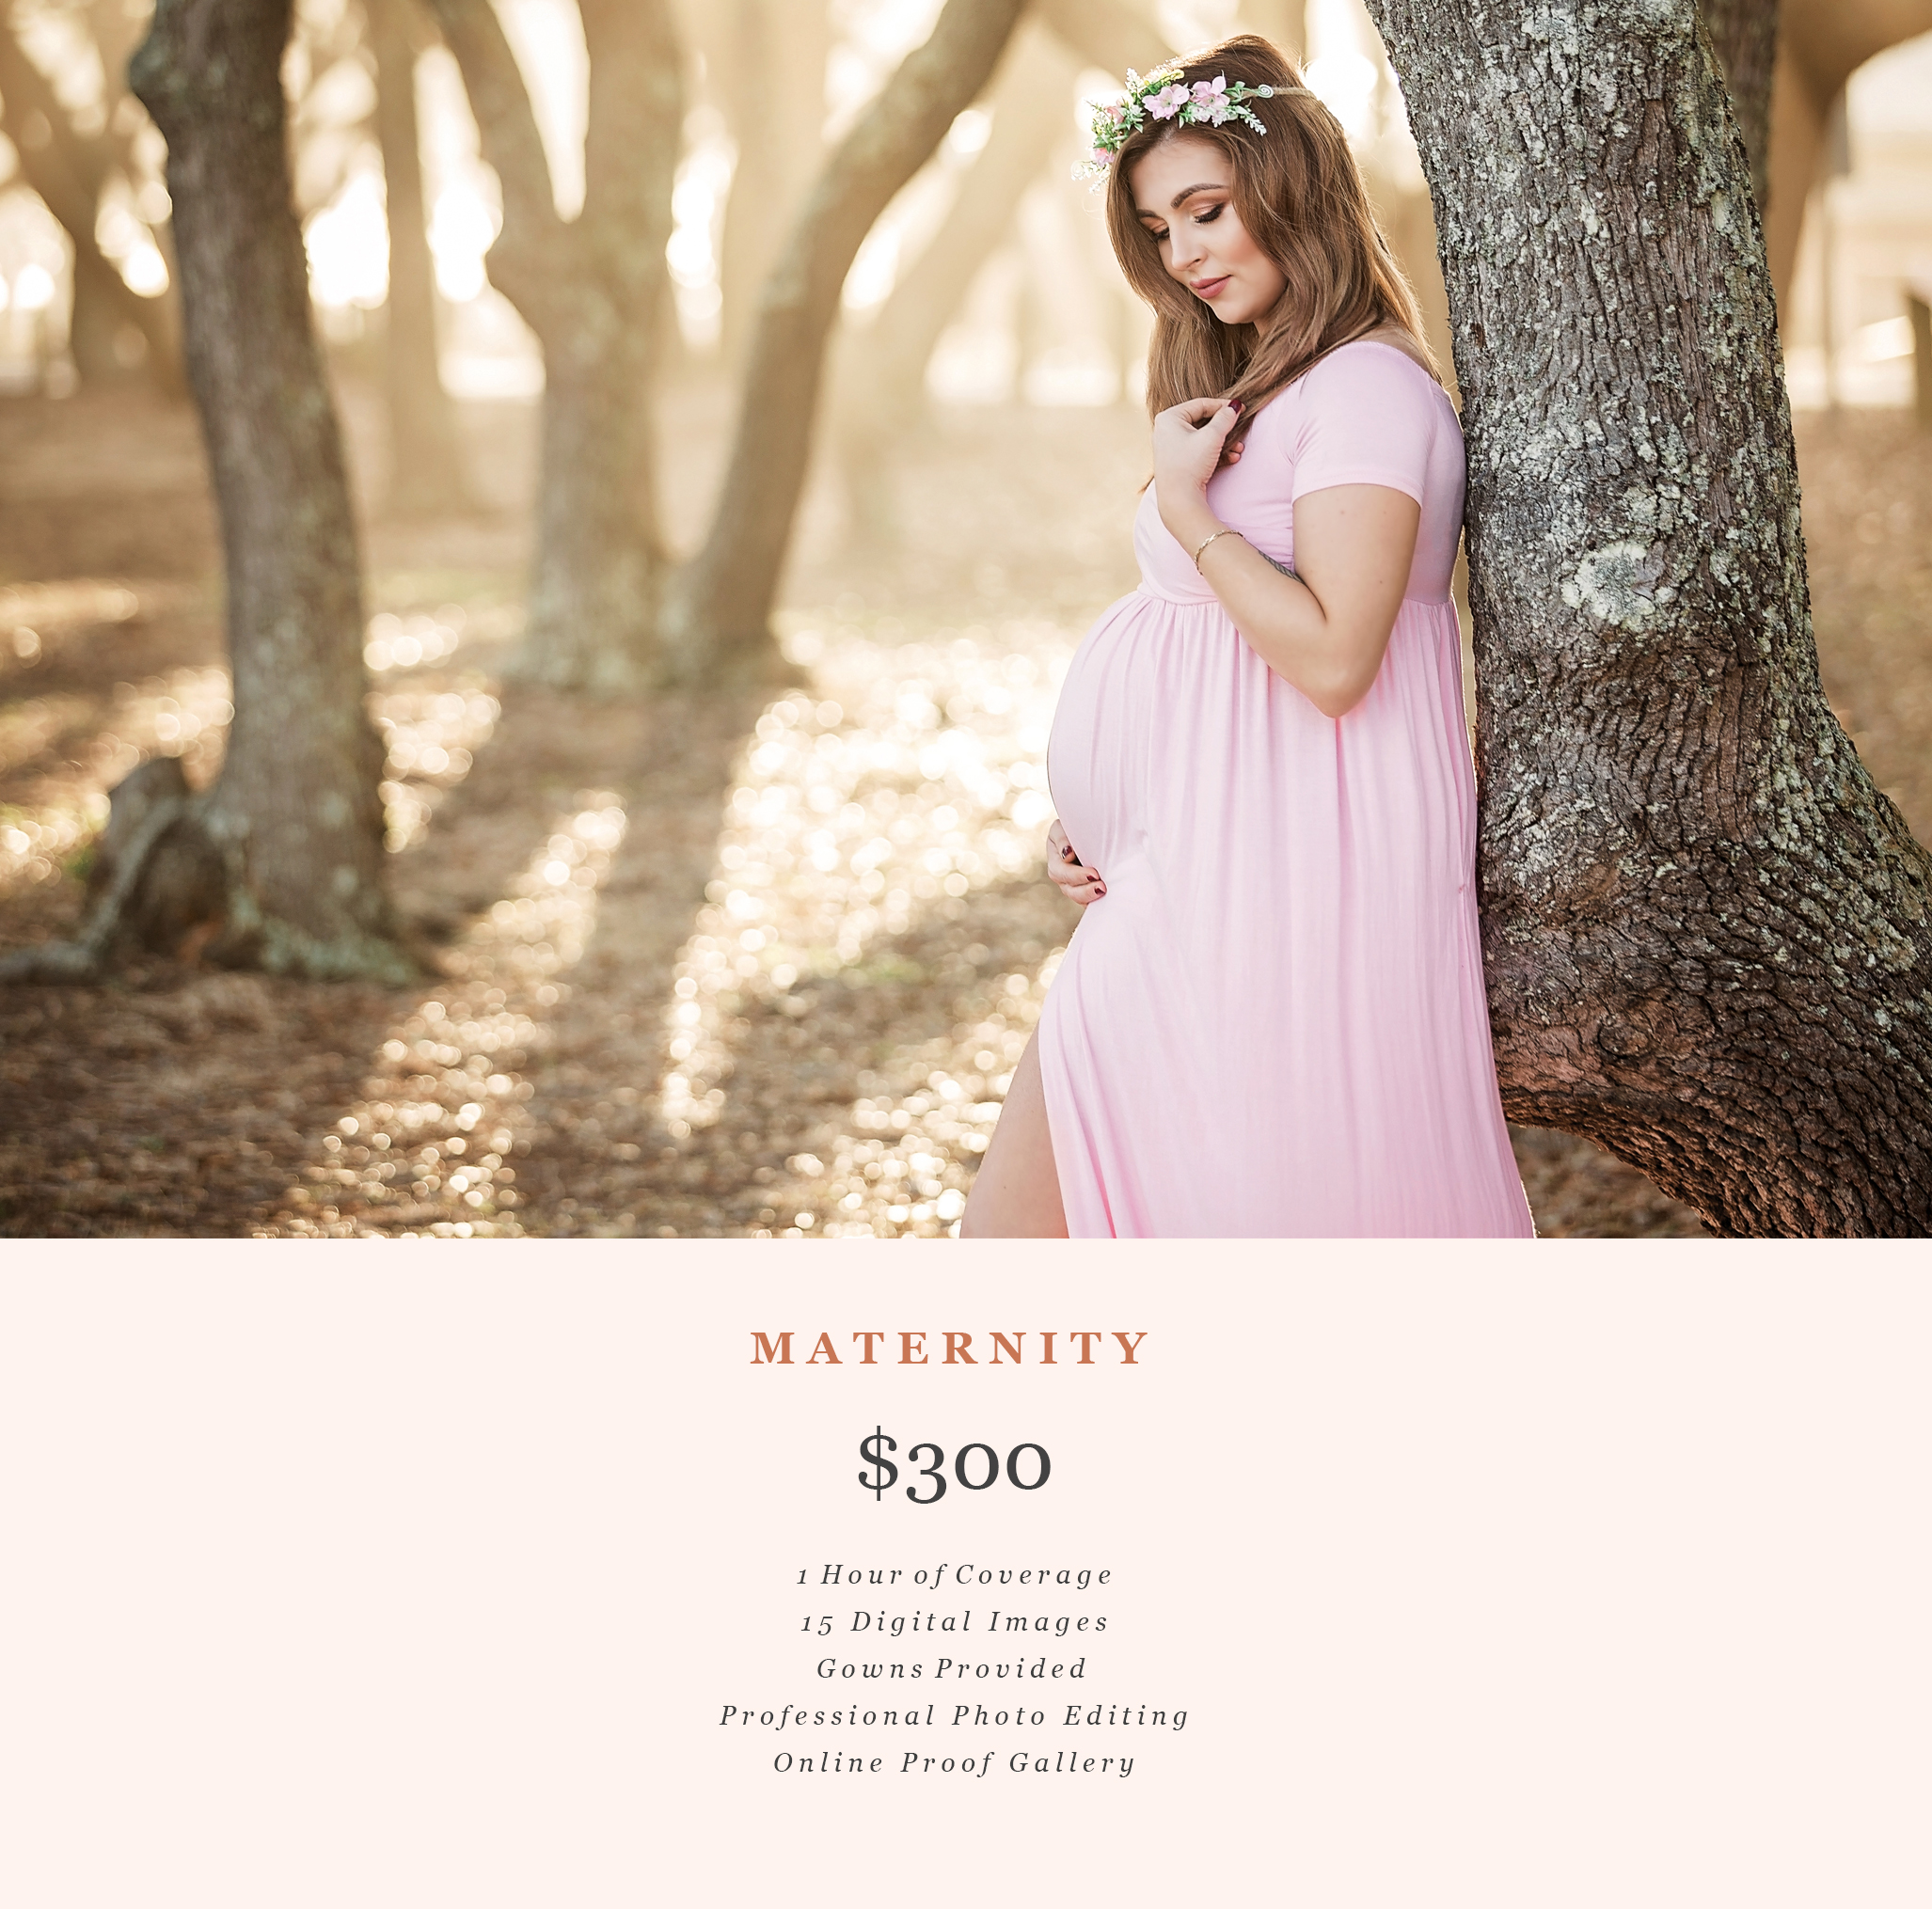 maternity photograph, Fayetteville, nc , maternity pricing, pricing guide,